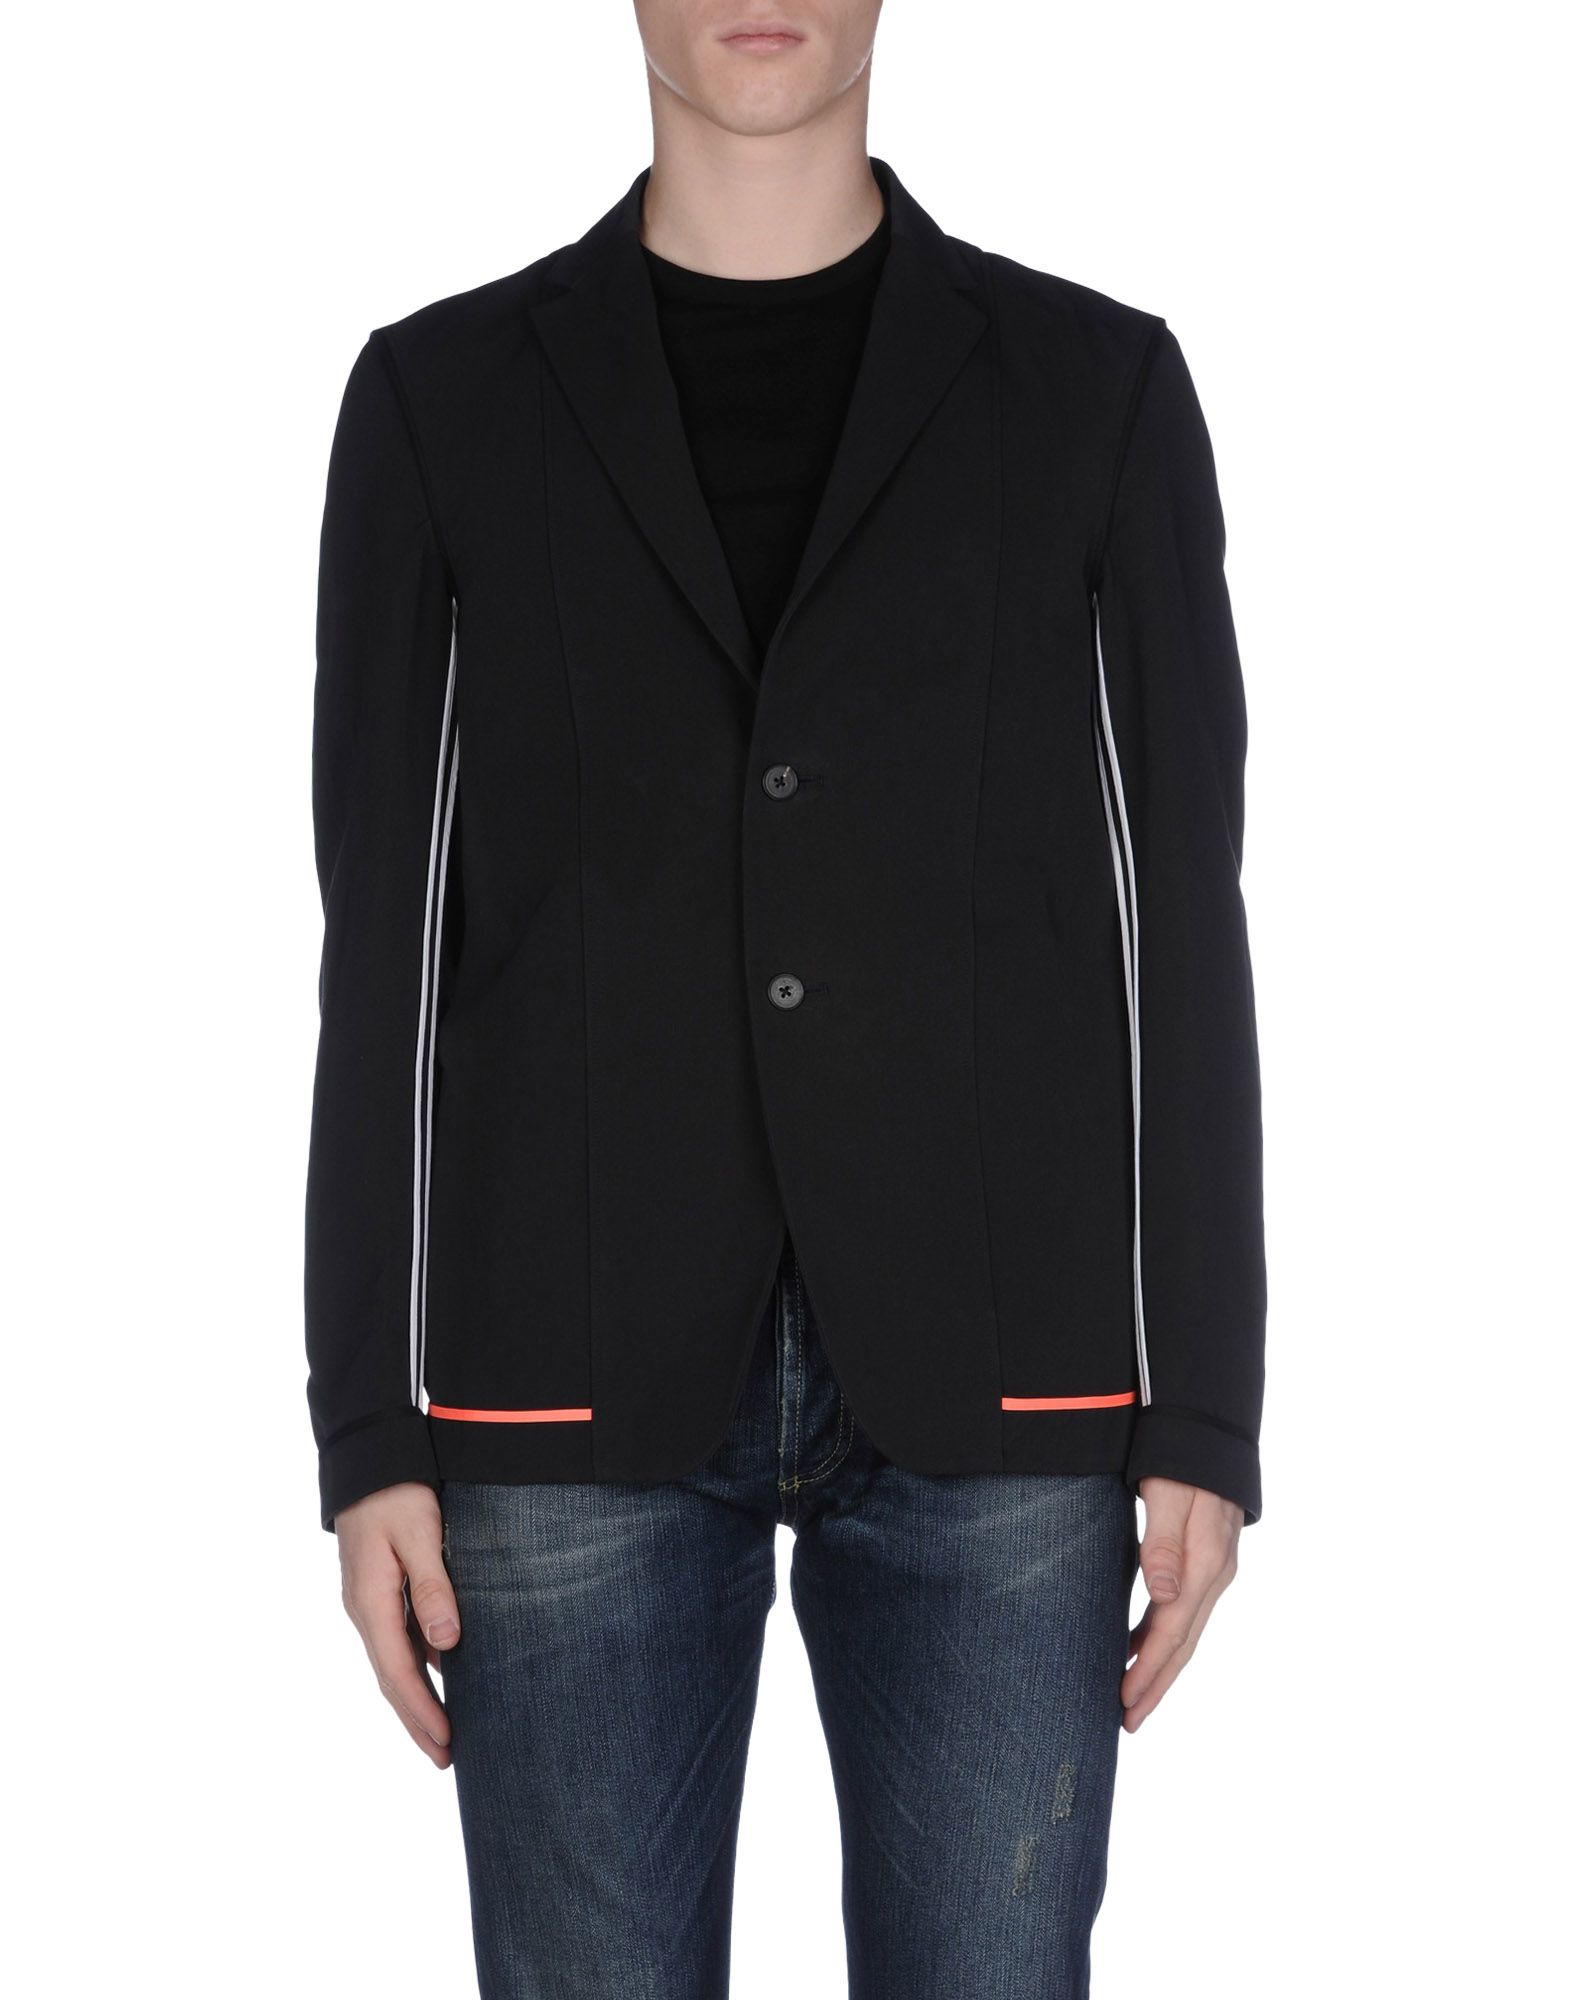 lyst jil sander blazer in black for men. Black Bedroom Furniture Sets. Home Design Ideas